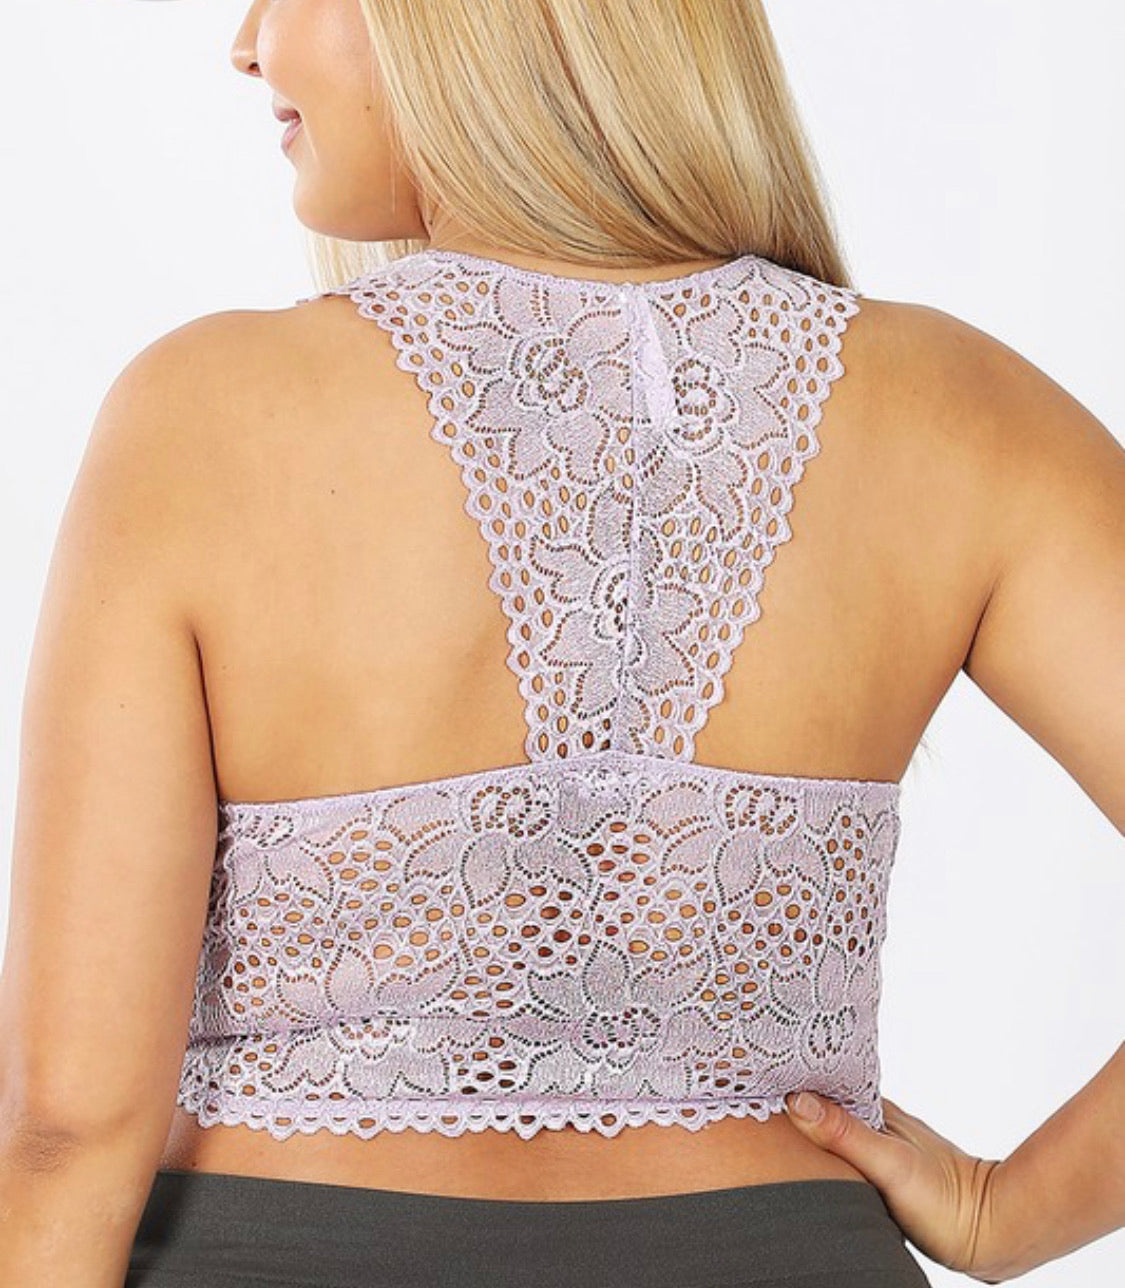 PLUS STRETCH LACE BRALETTE REMOVABLE BRA PADS